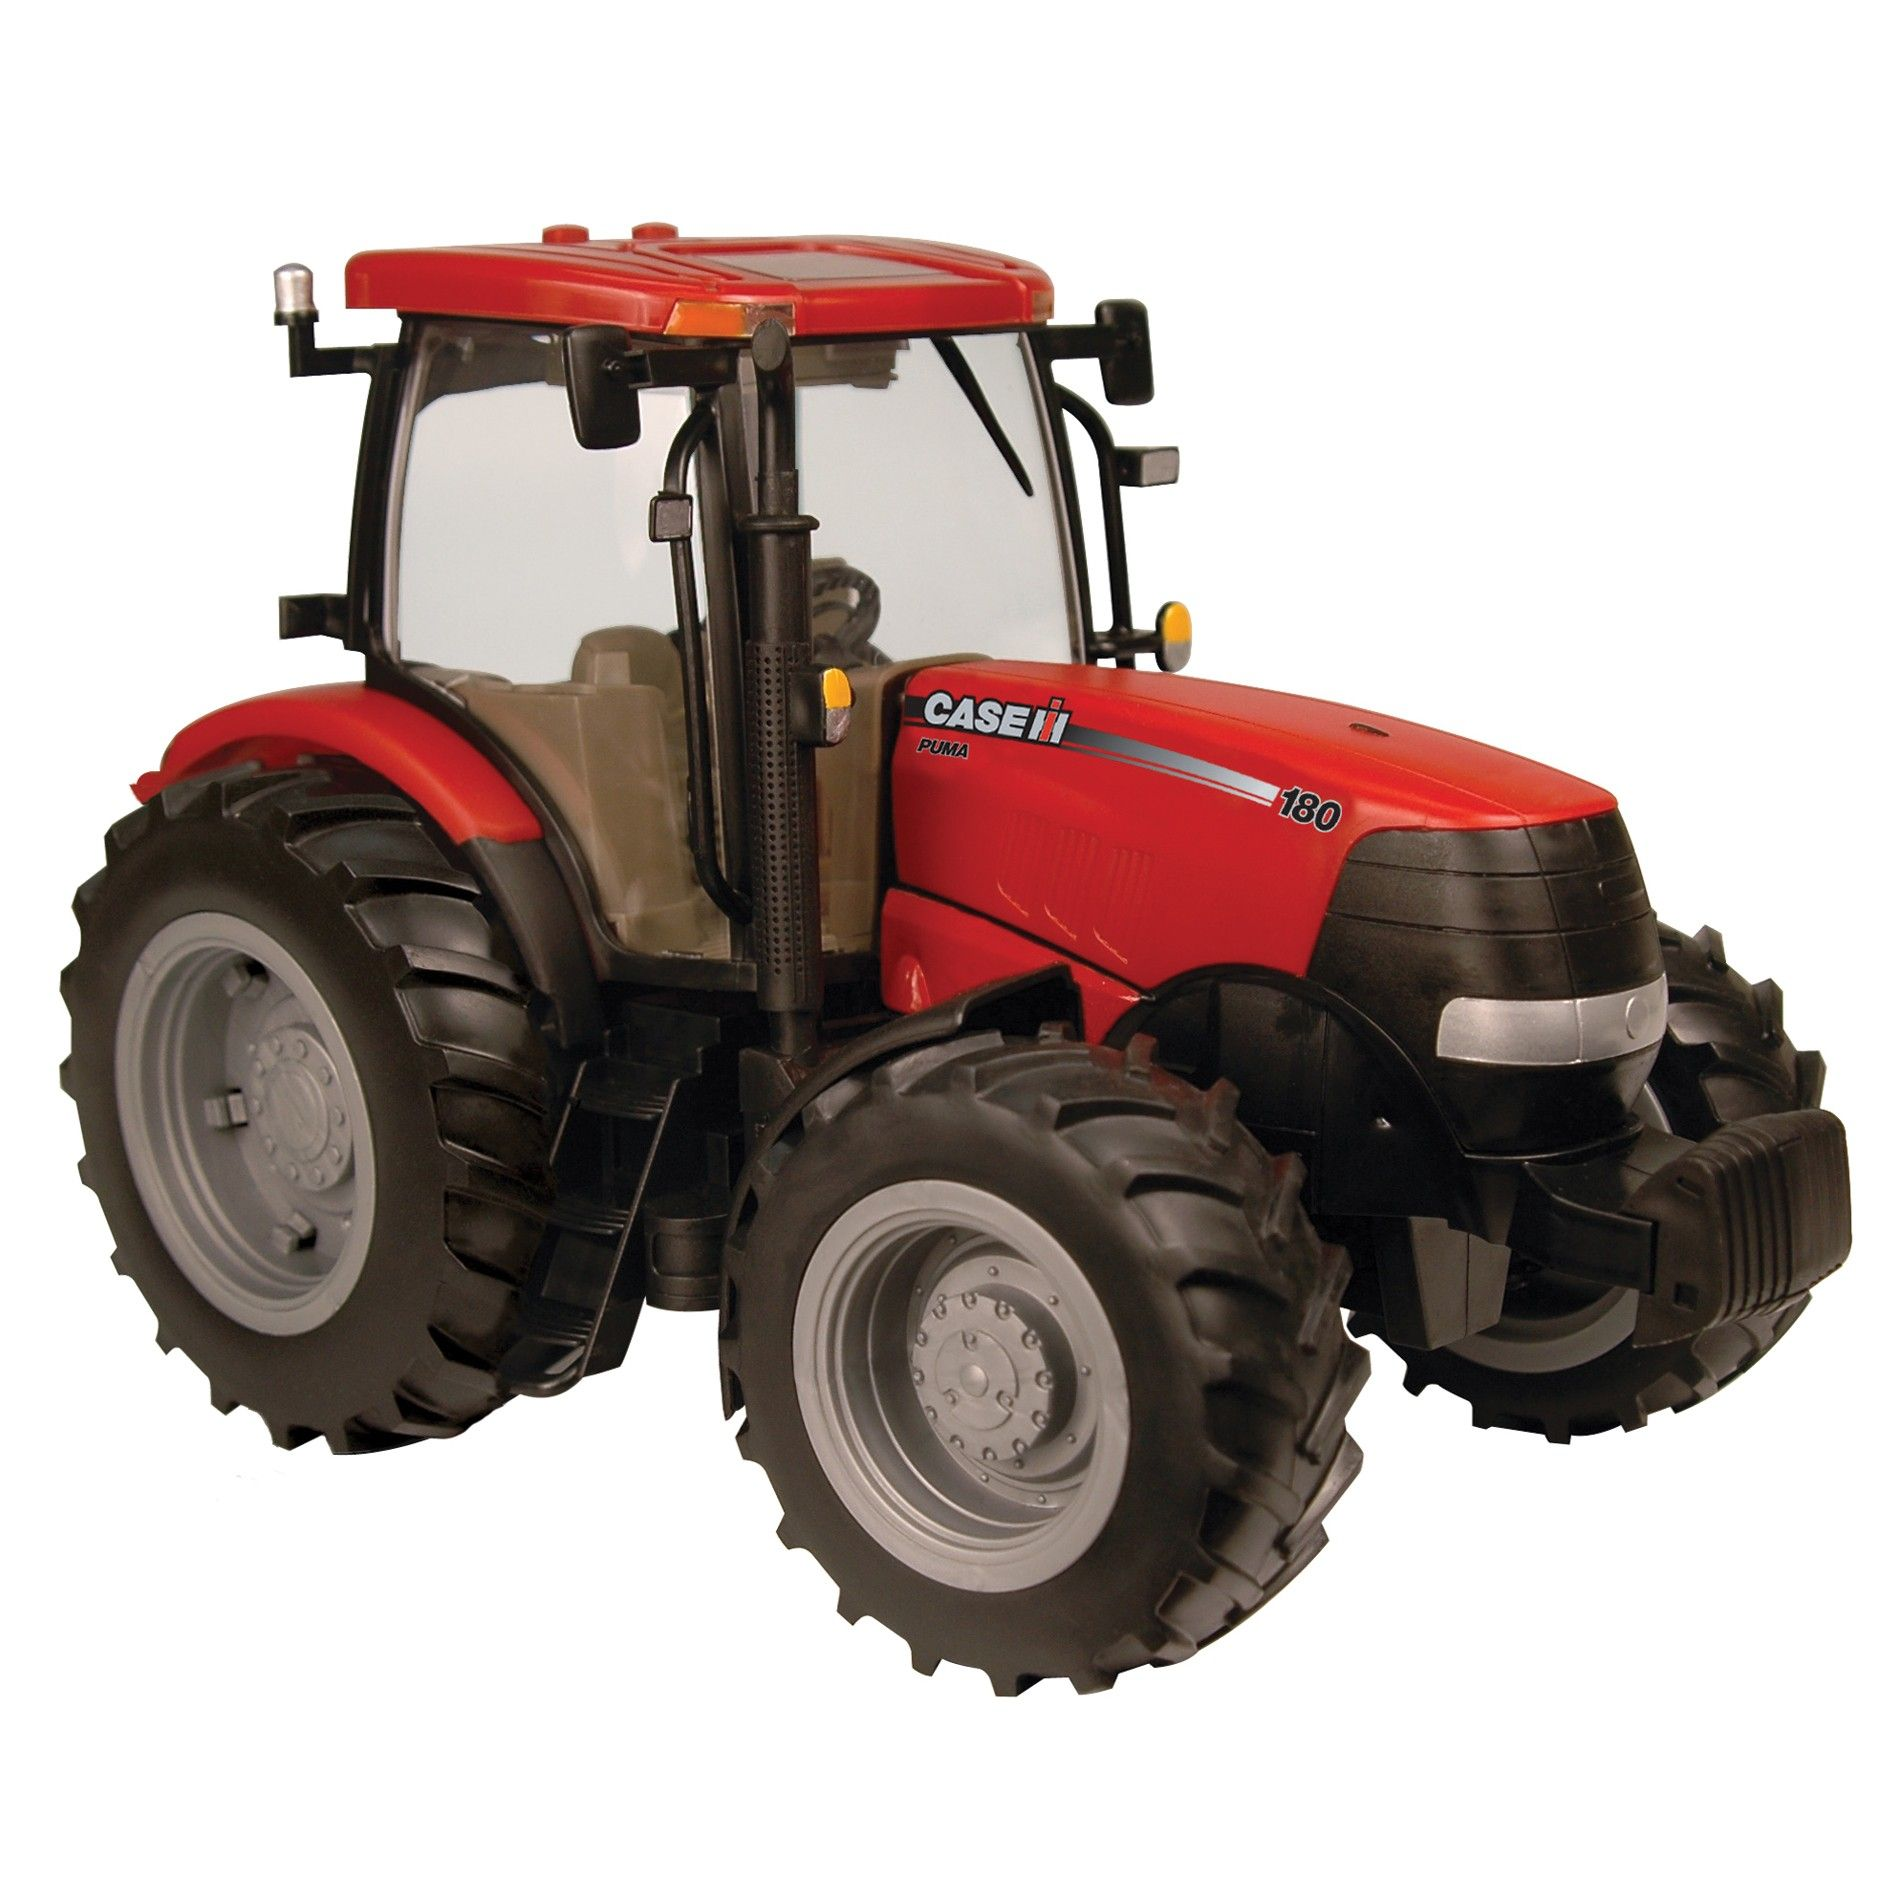 Case Ih Tractor Clipart.